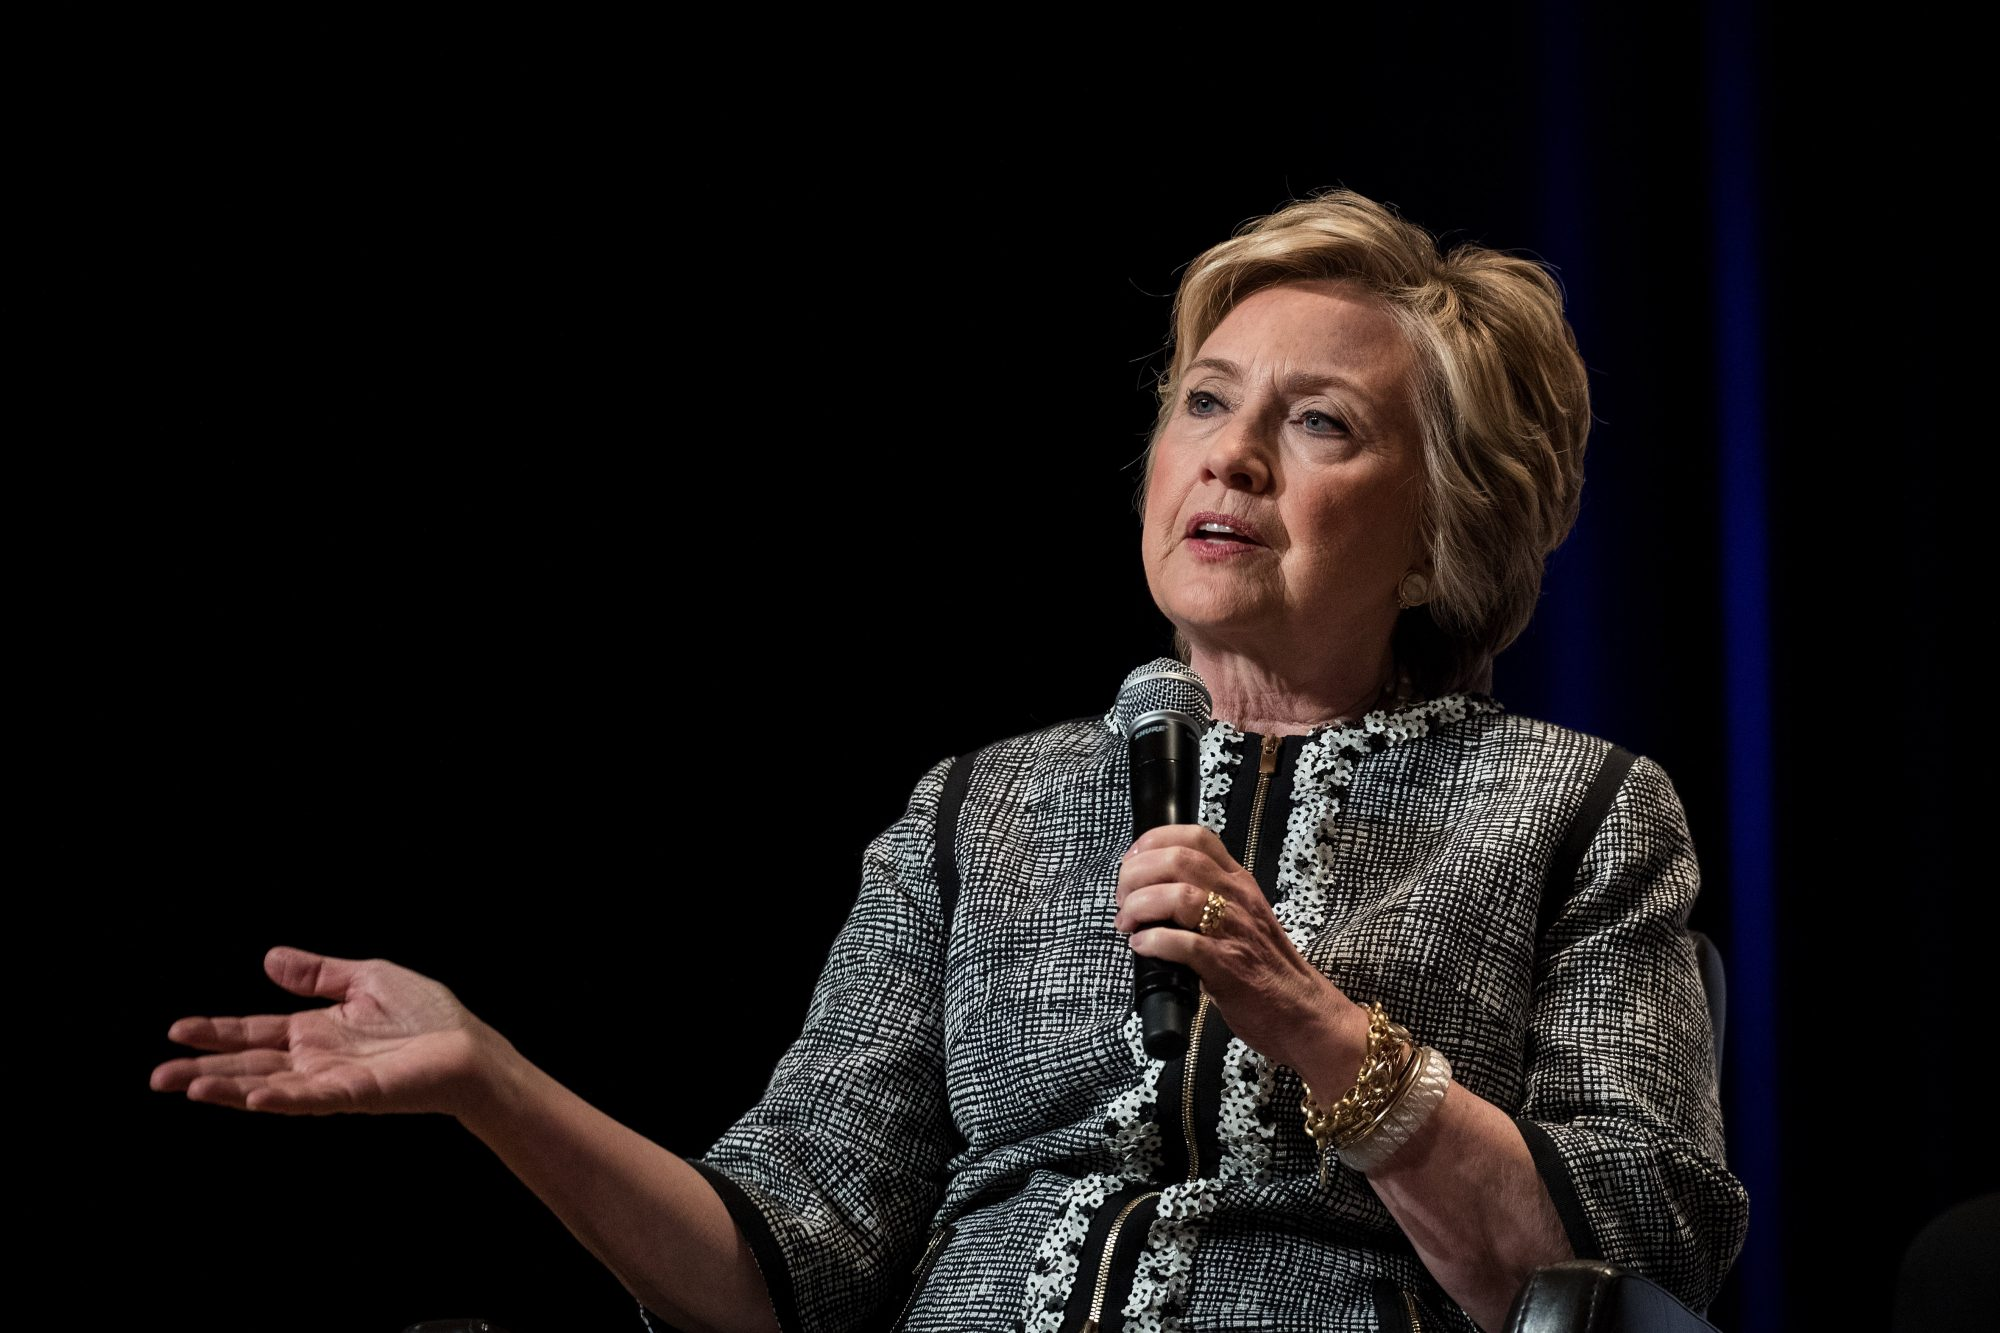 Hillary Clinton Addresses Book Expo In New York City